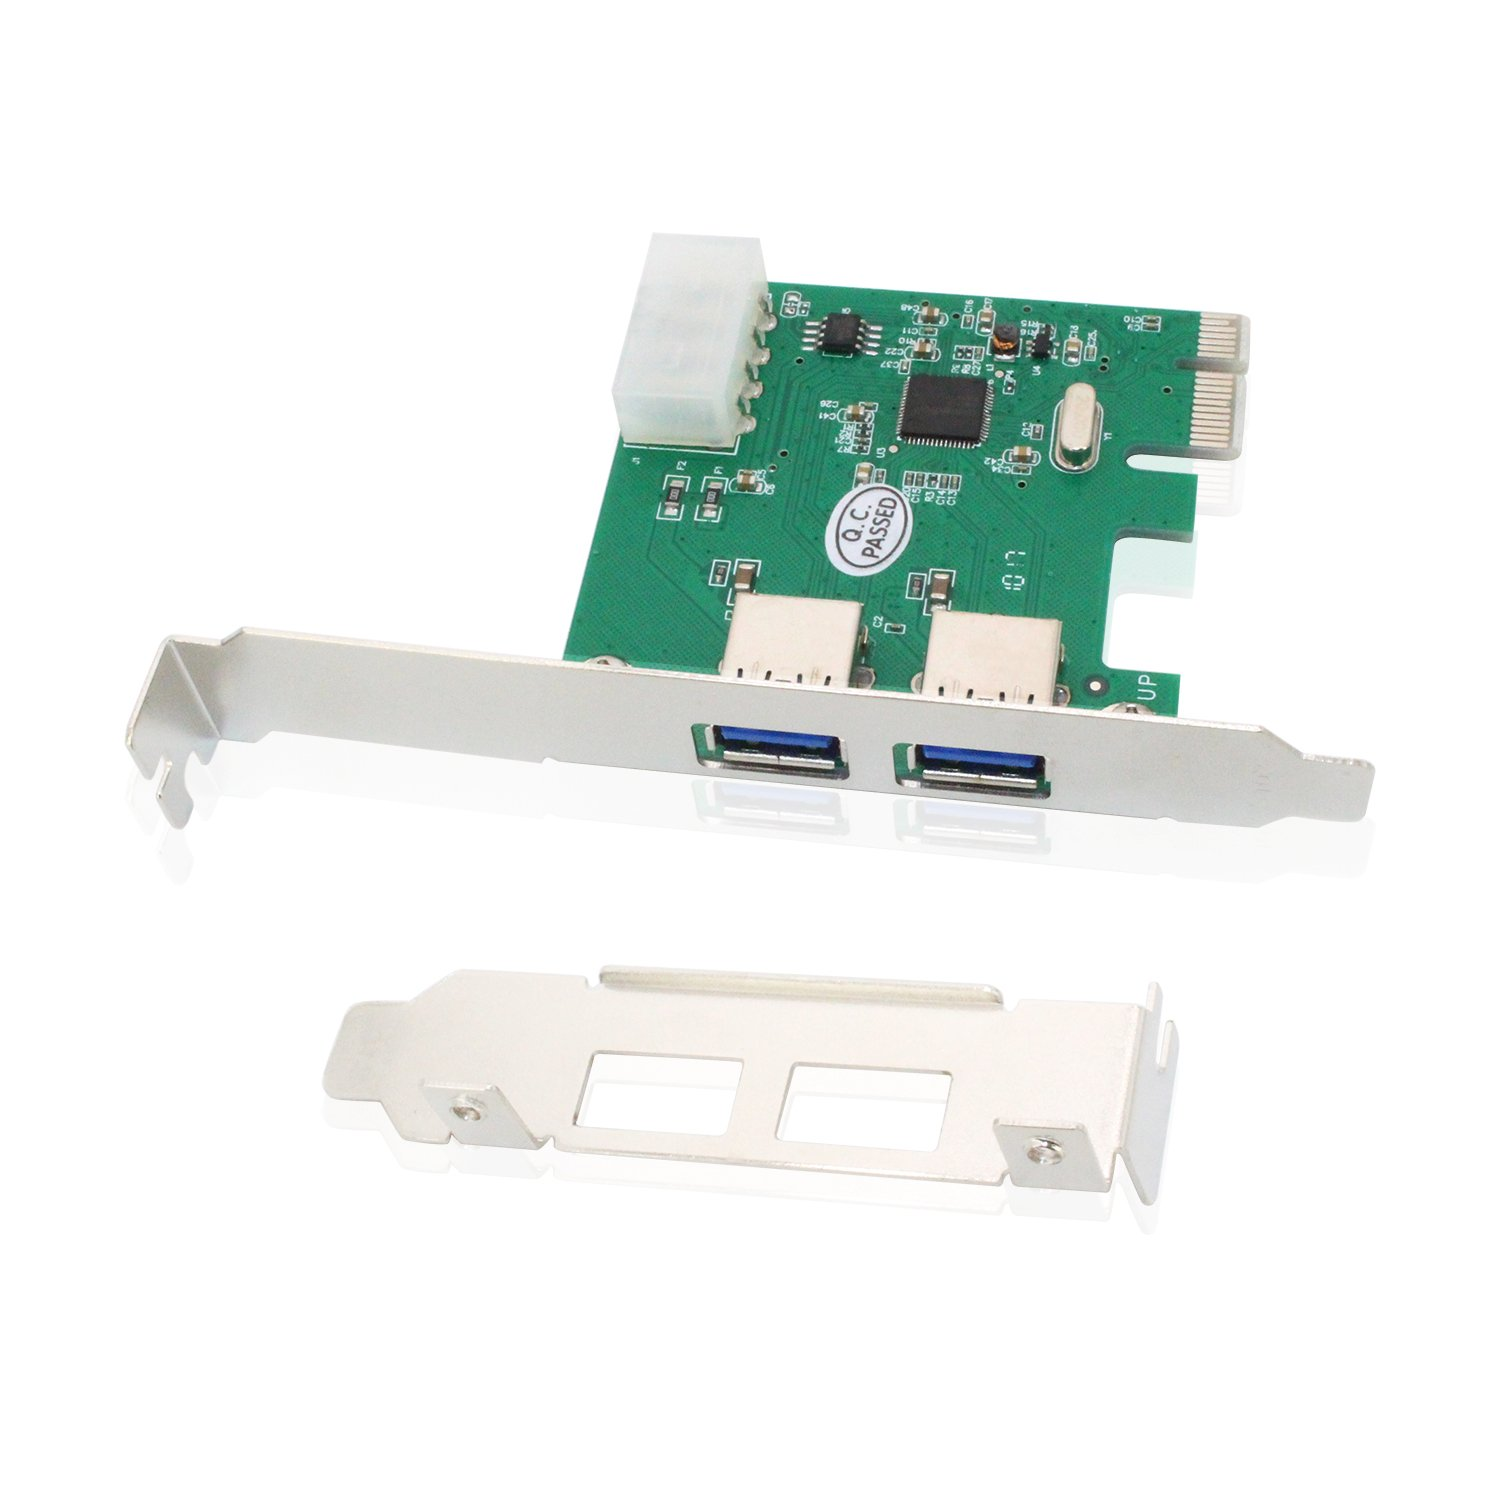 USB PCIe Card, Tanbin 2 Port USB 3.0 to PCI Express Card Expansion card, PCI-E to USB 3.0 4 Port Hub Controller Adapter - Expand Another Two USB 3.0 Ports for Desktop PC